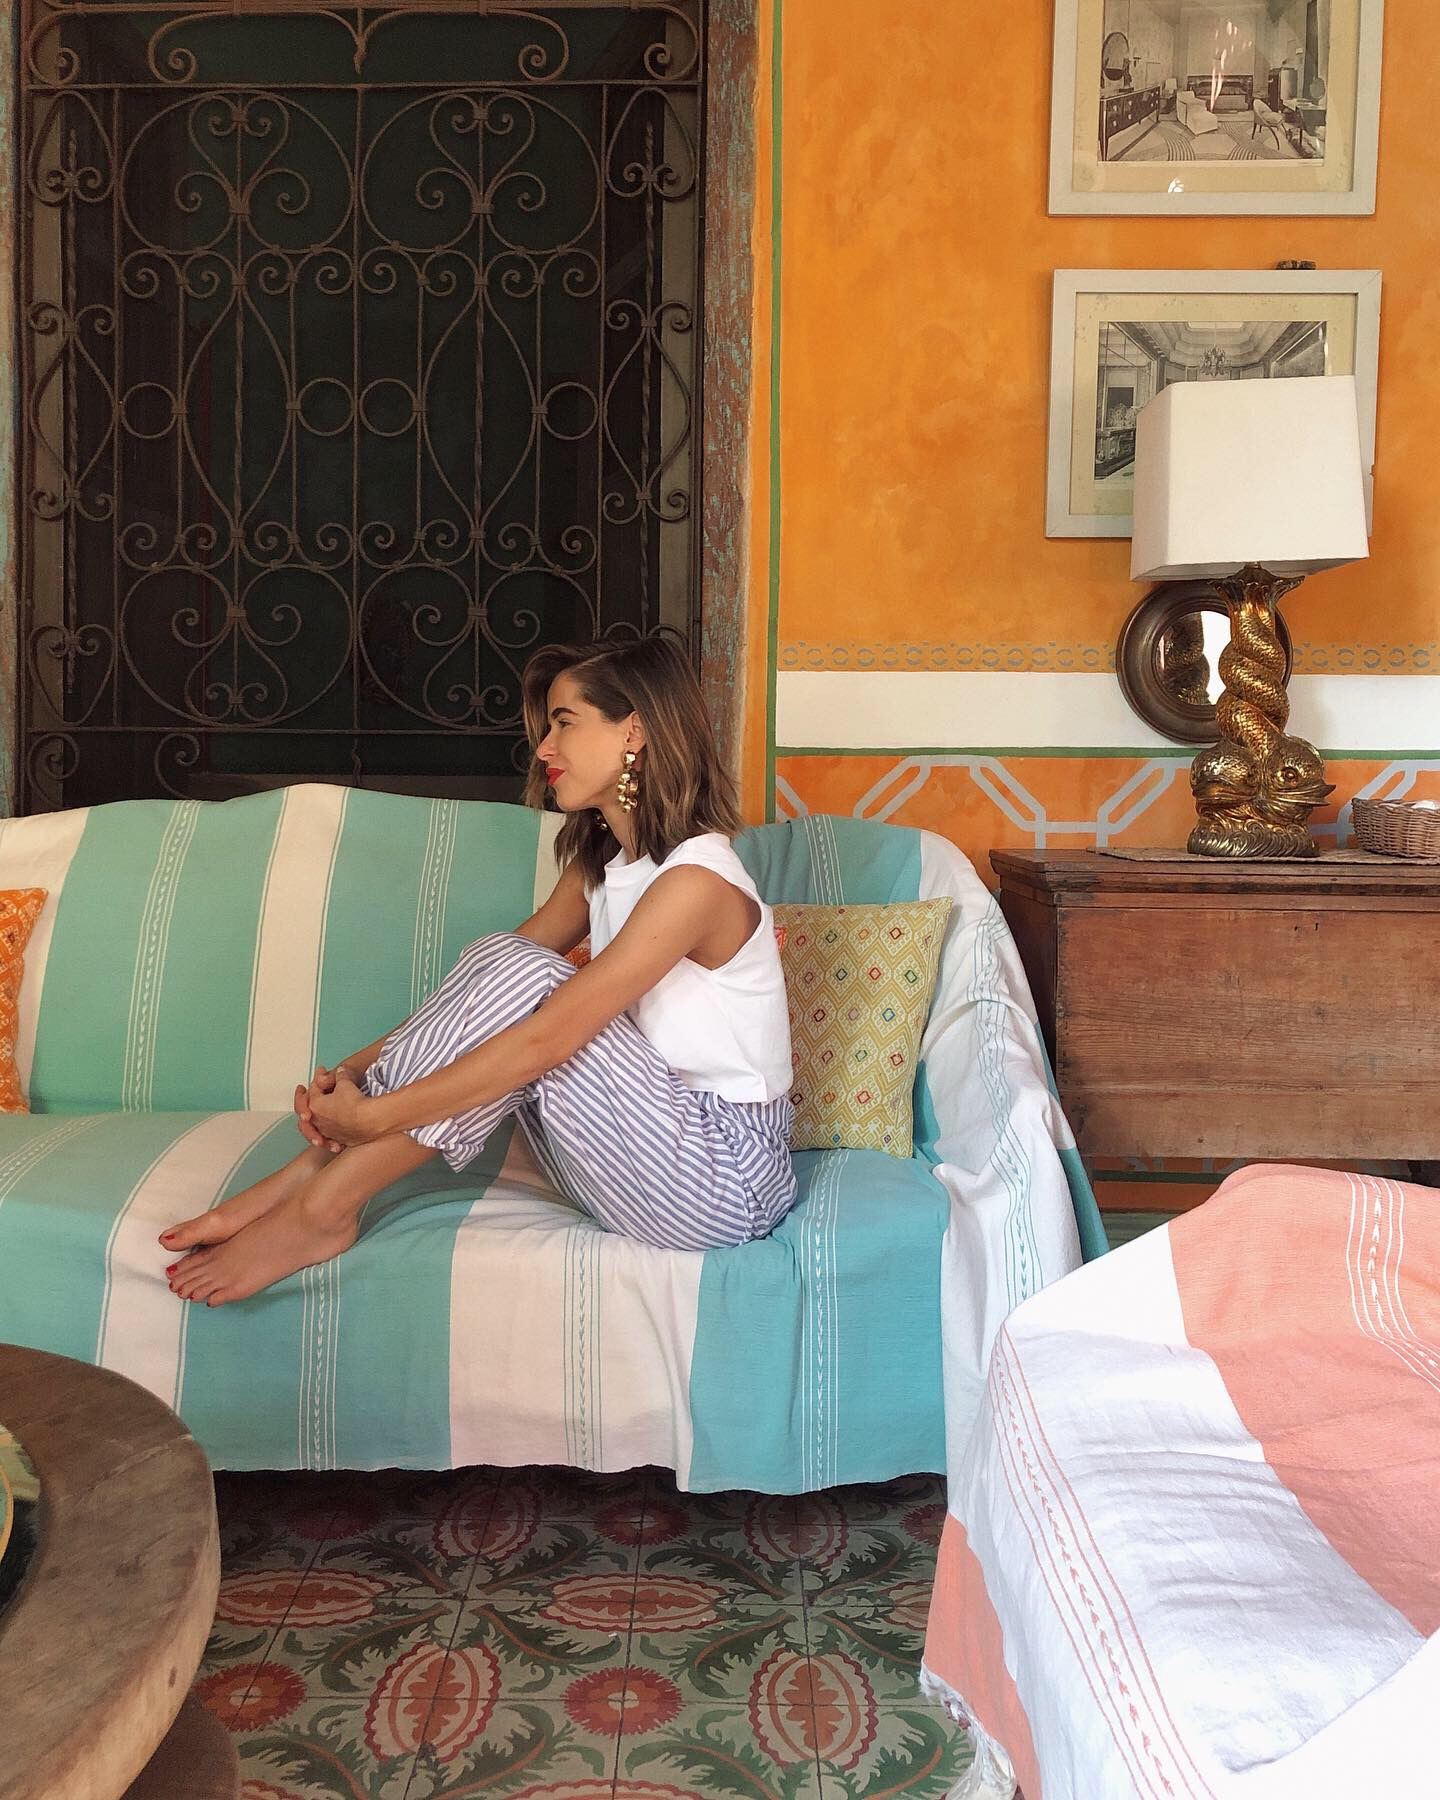 Fashion Blogger Stephanie Hill from The Style Bungalow featuring Mérida: A Hidden Gem of Haciendas